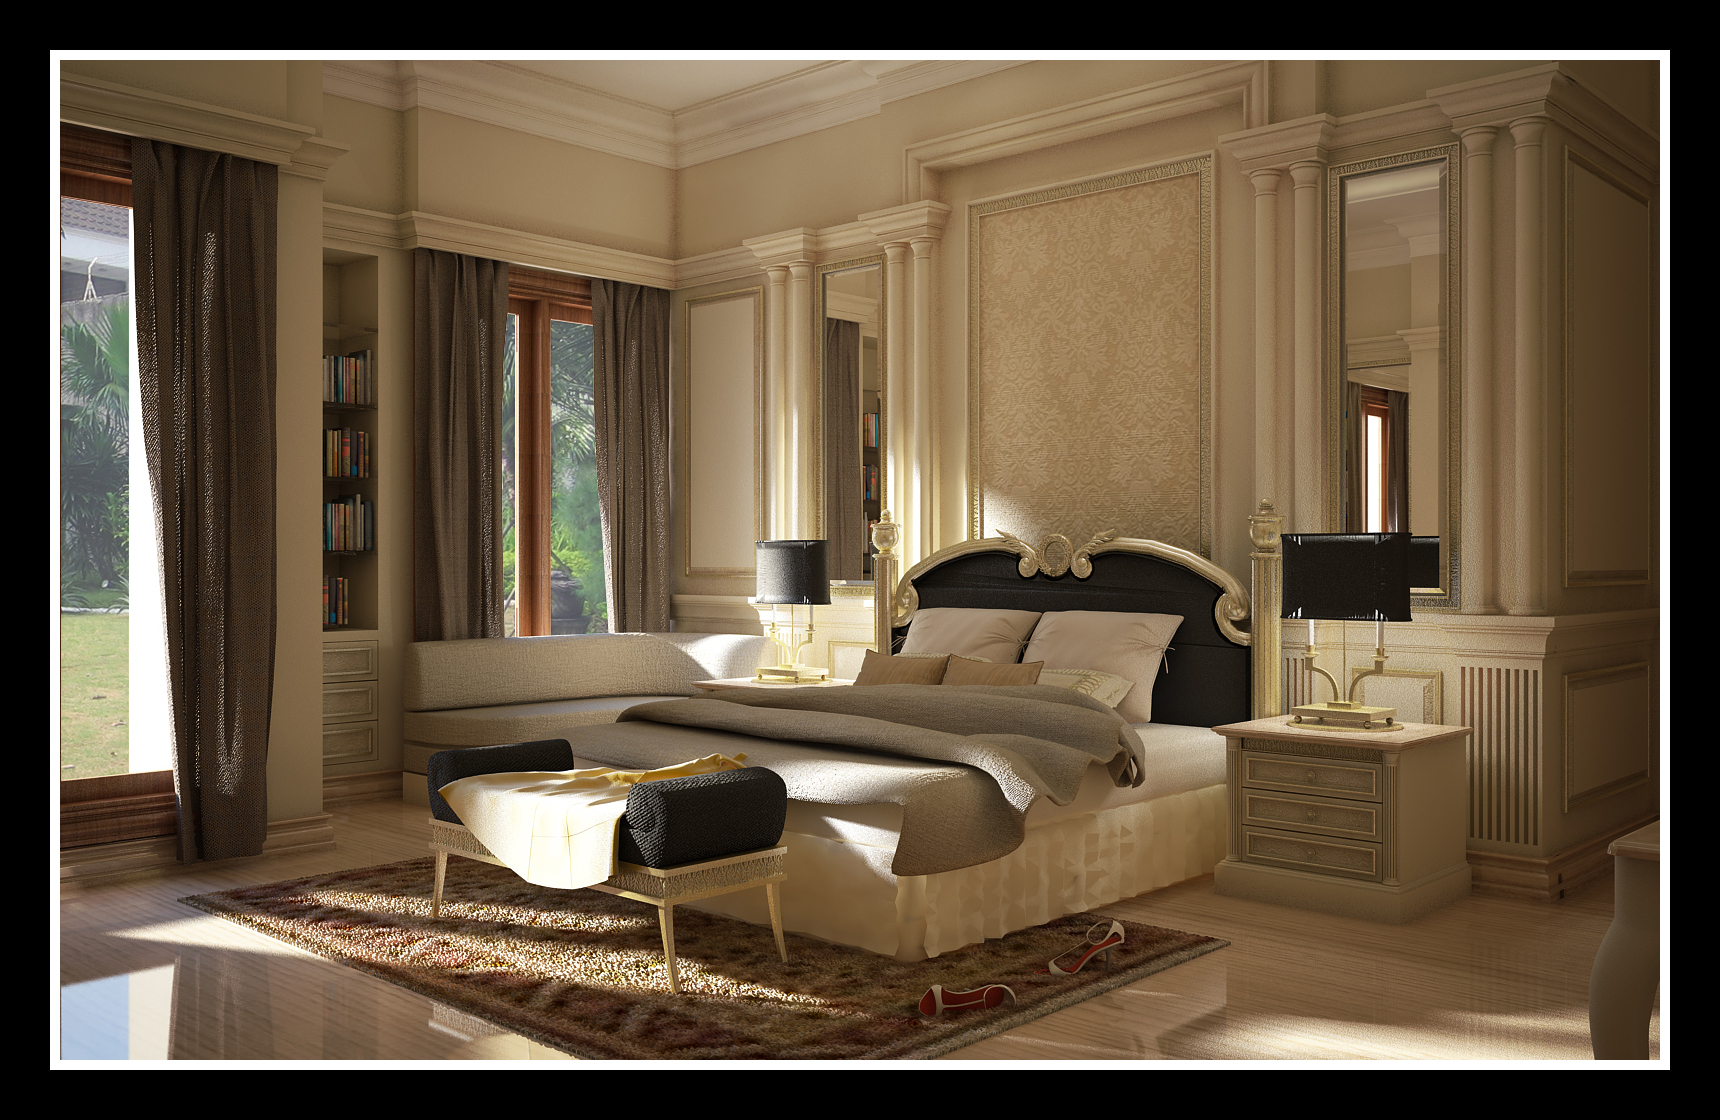 Remarkable Classic Bedroom Design Ideas 1720 x 1120 · 1344 kB · jpeg